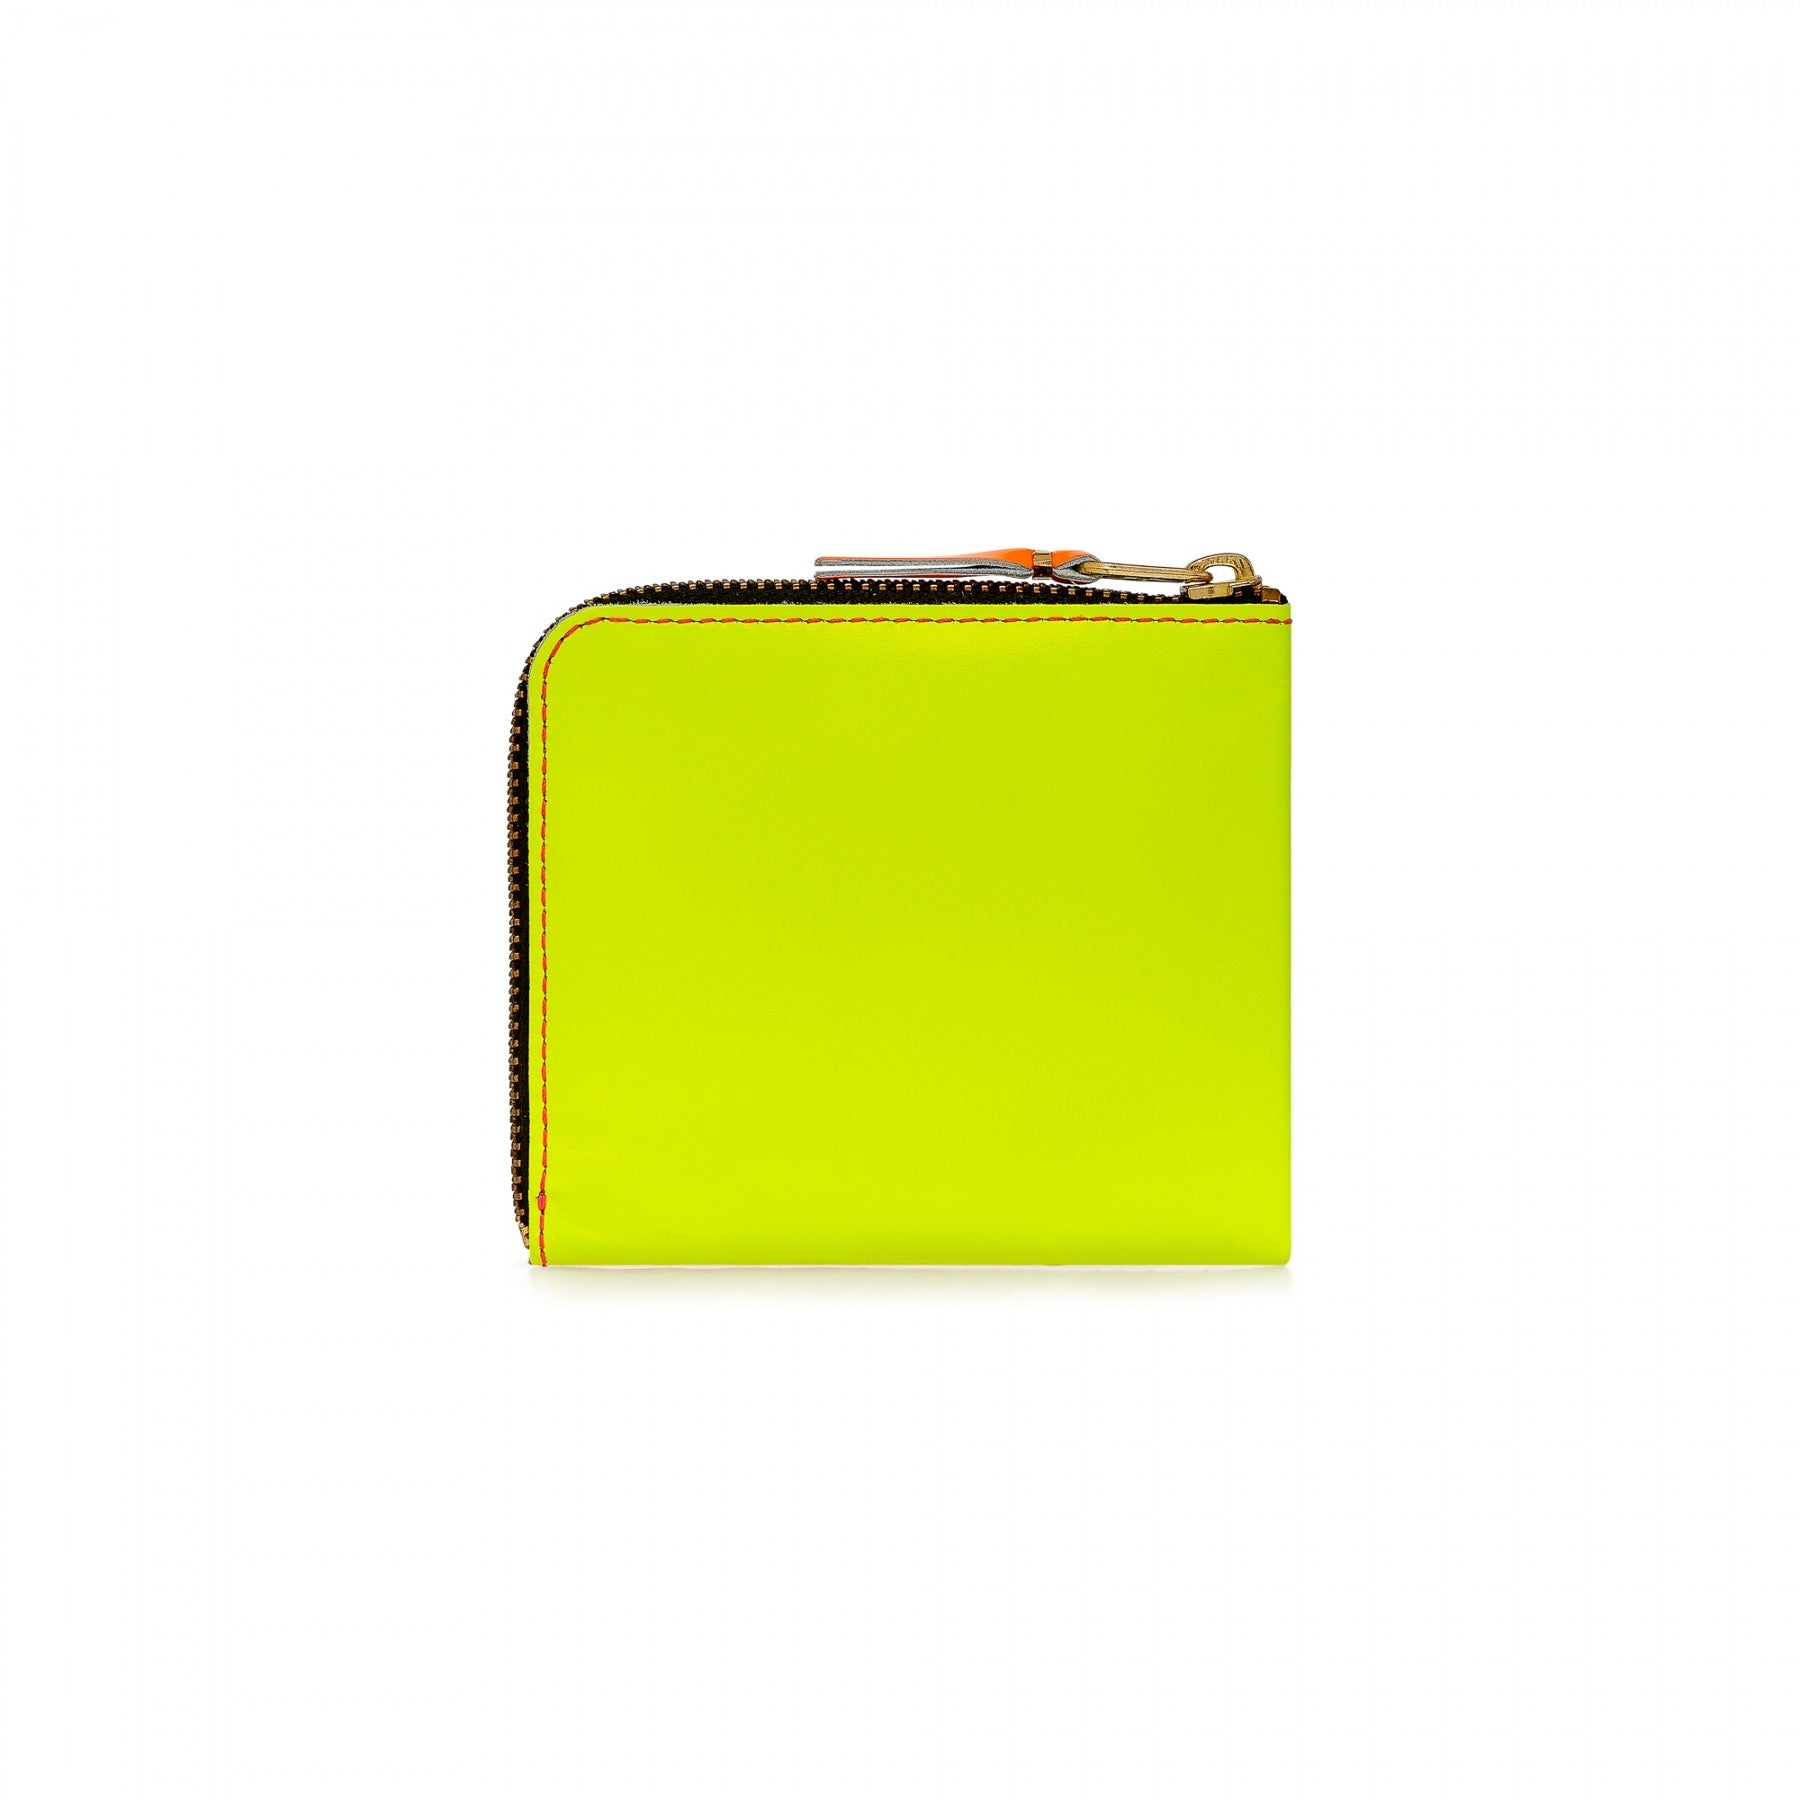 SUPER FLUO WALLET - PINK / YELLOW